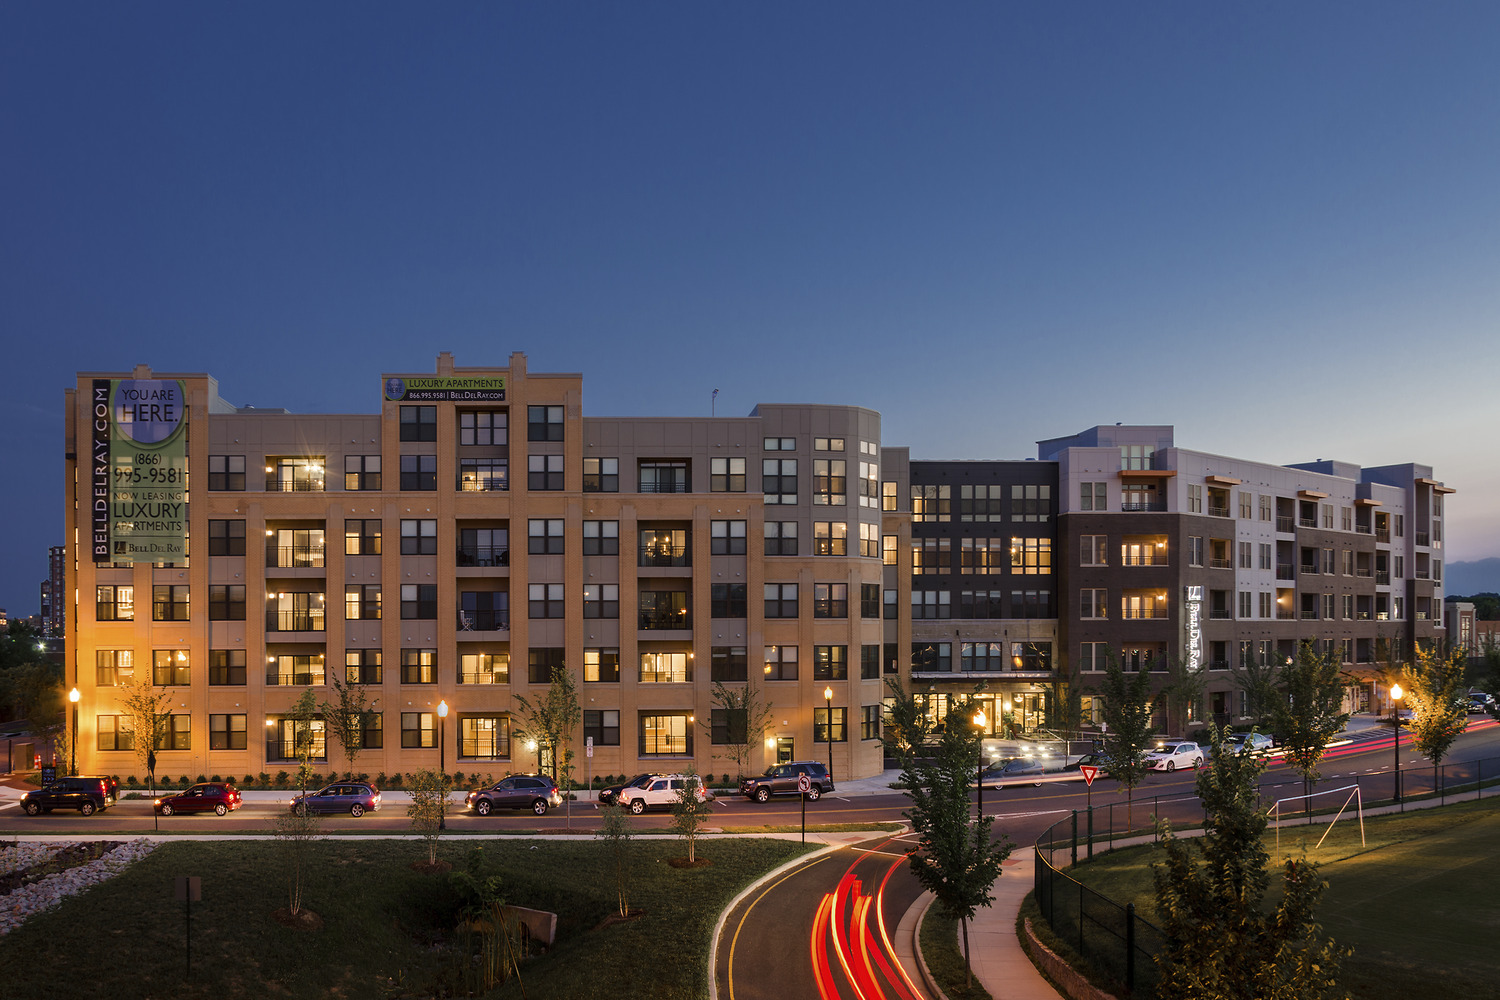 CBG builds Bell Del Ray, a 276-Unit Luxury Residential Community with Cast-in-Place Garage in Alexandria, VA - Image #1